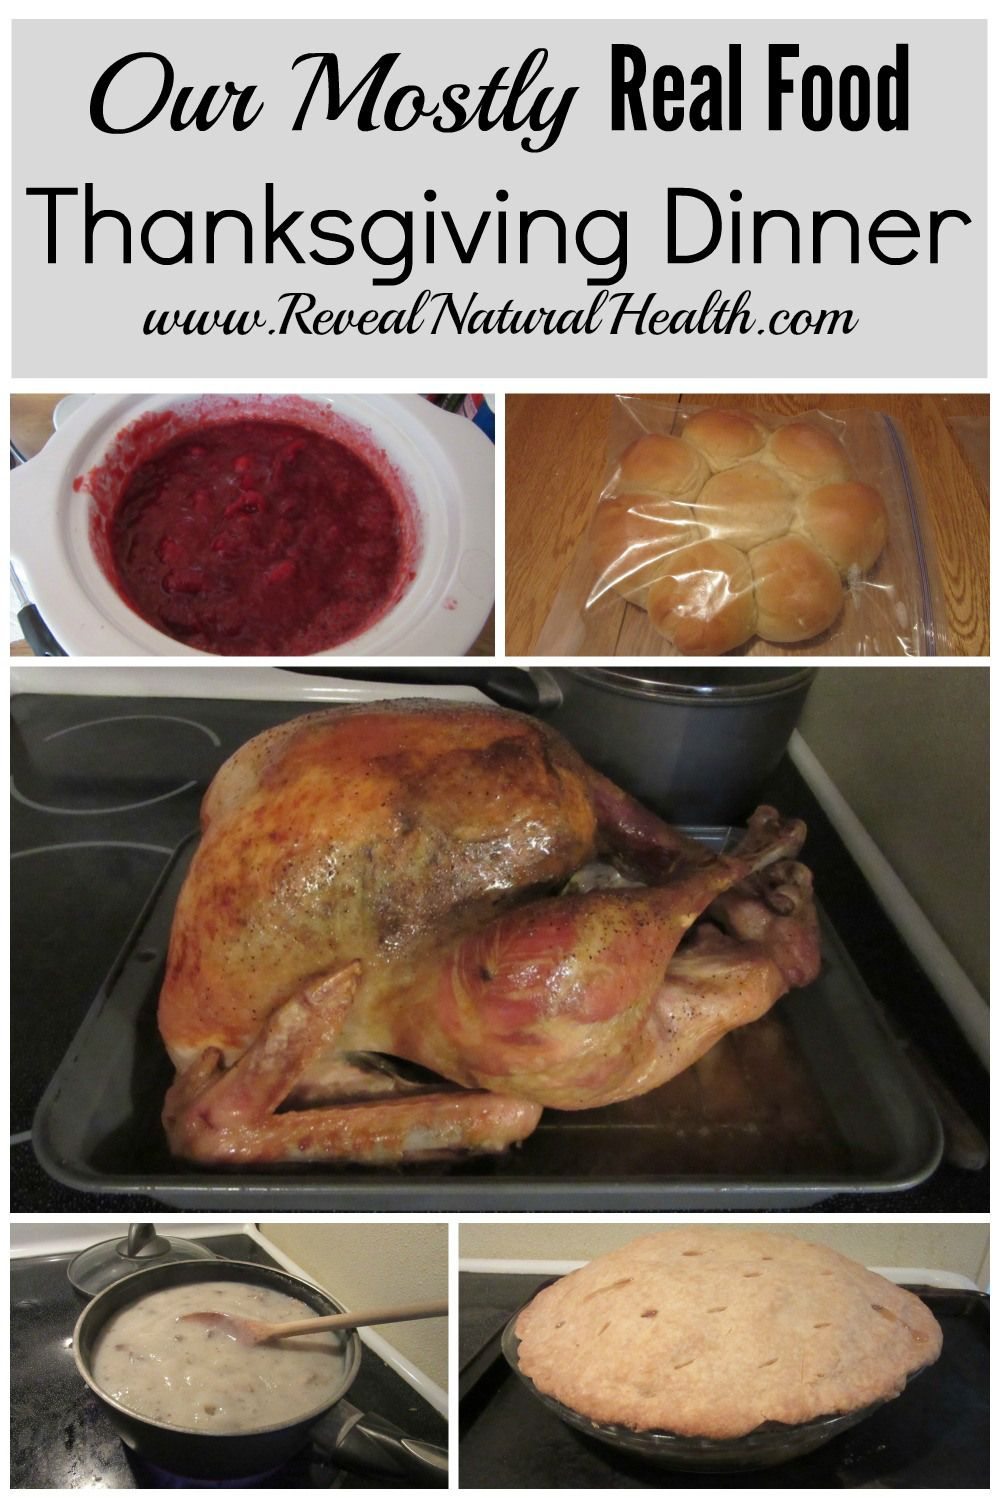 Our homemade Thanksgiving Dinner with recipe links and tips used for cooking turkey, rolls, cranberry sauce, green bean casserole and apple pie. These recipes could be used for Christmas dinner too.